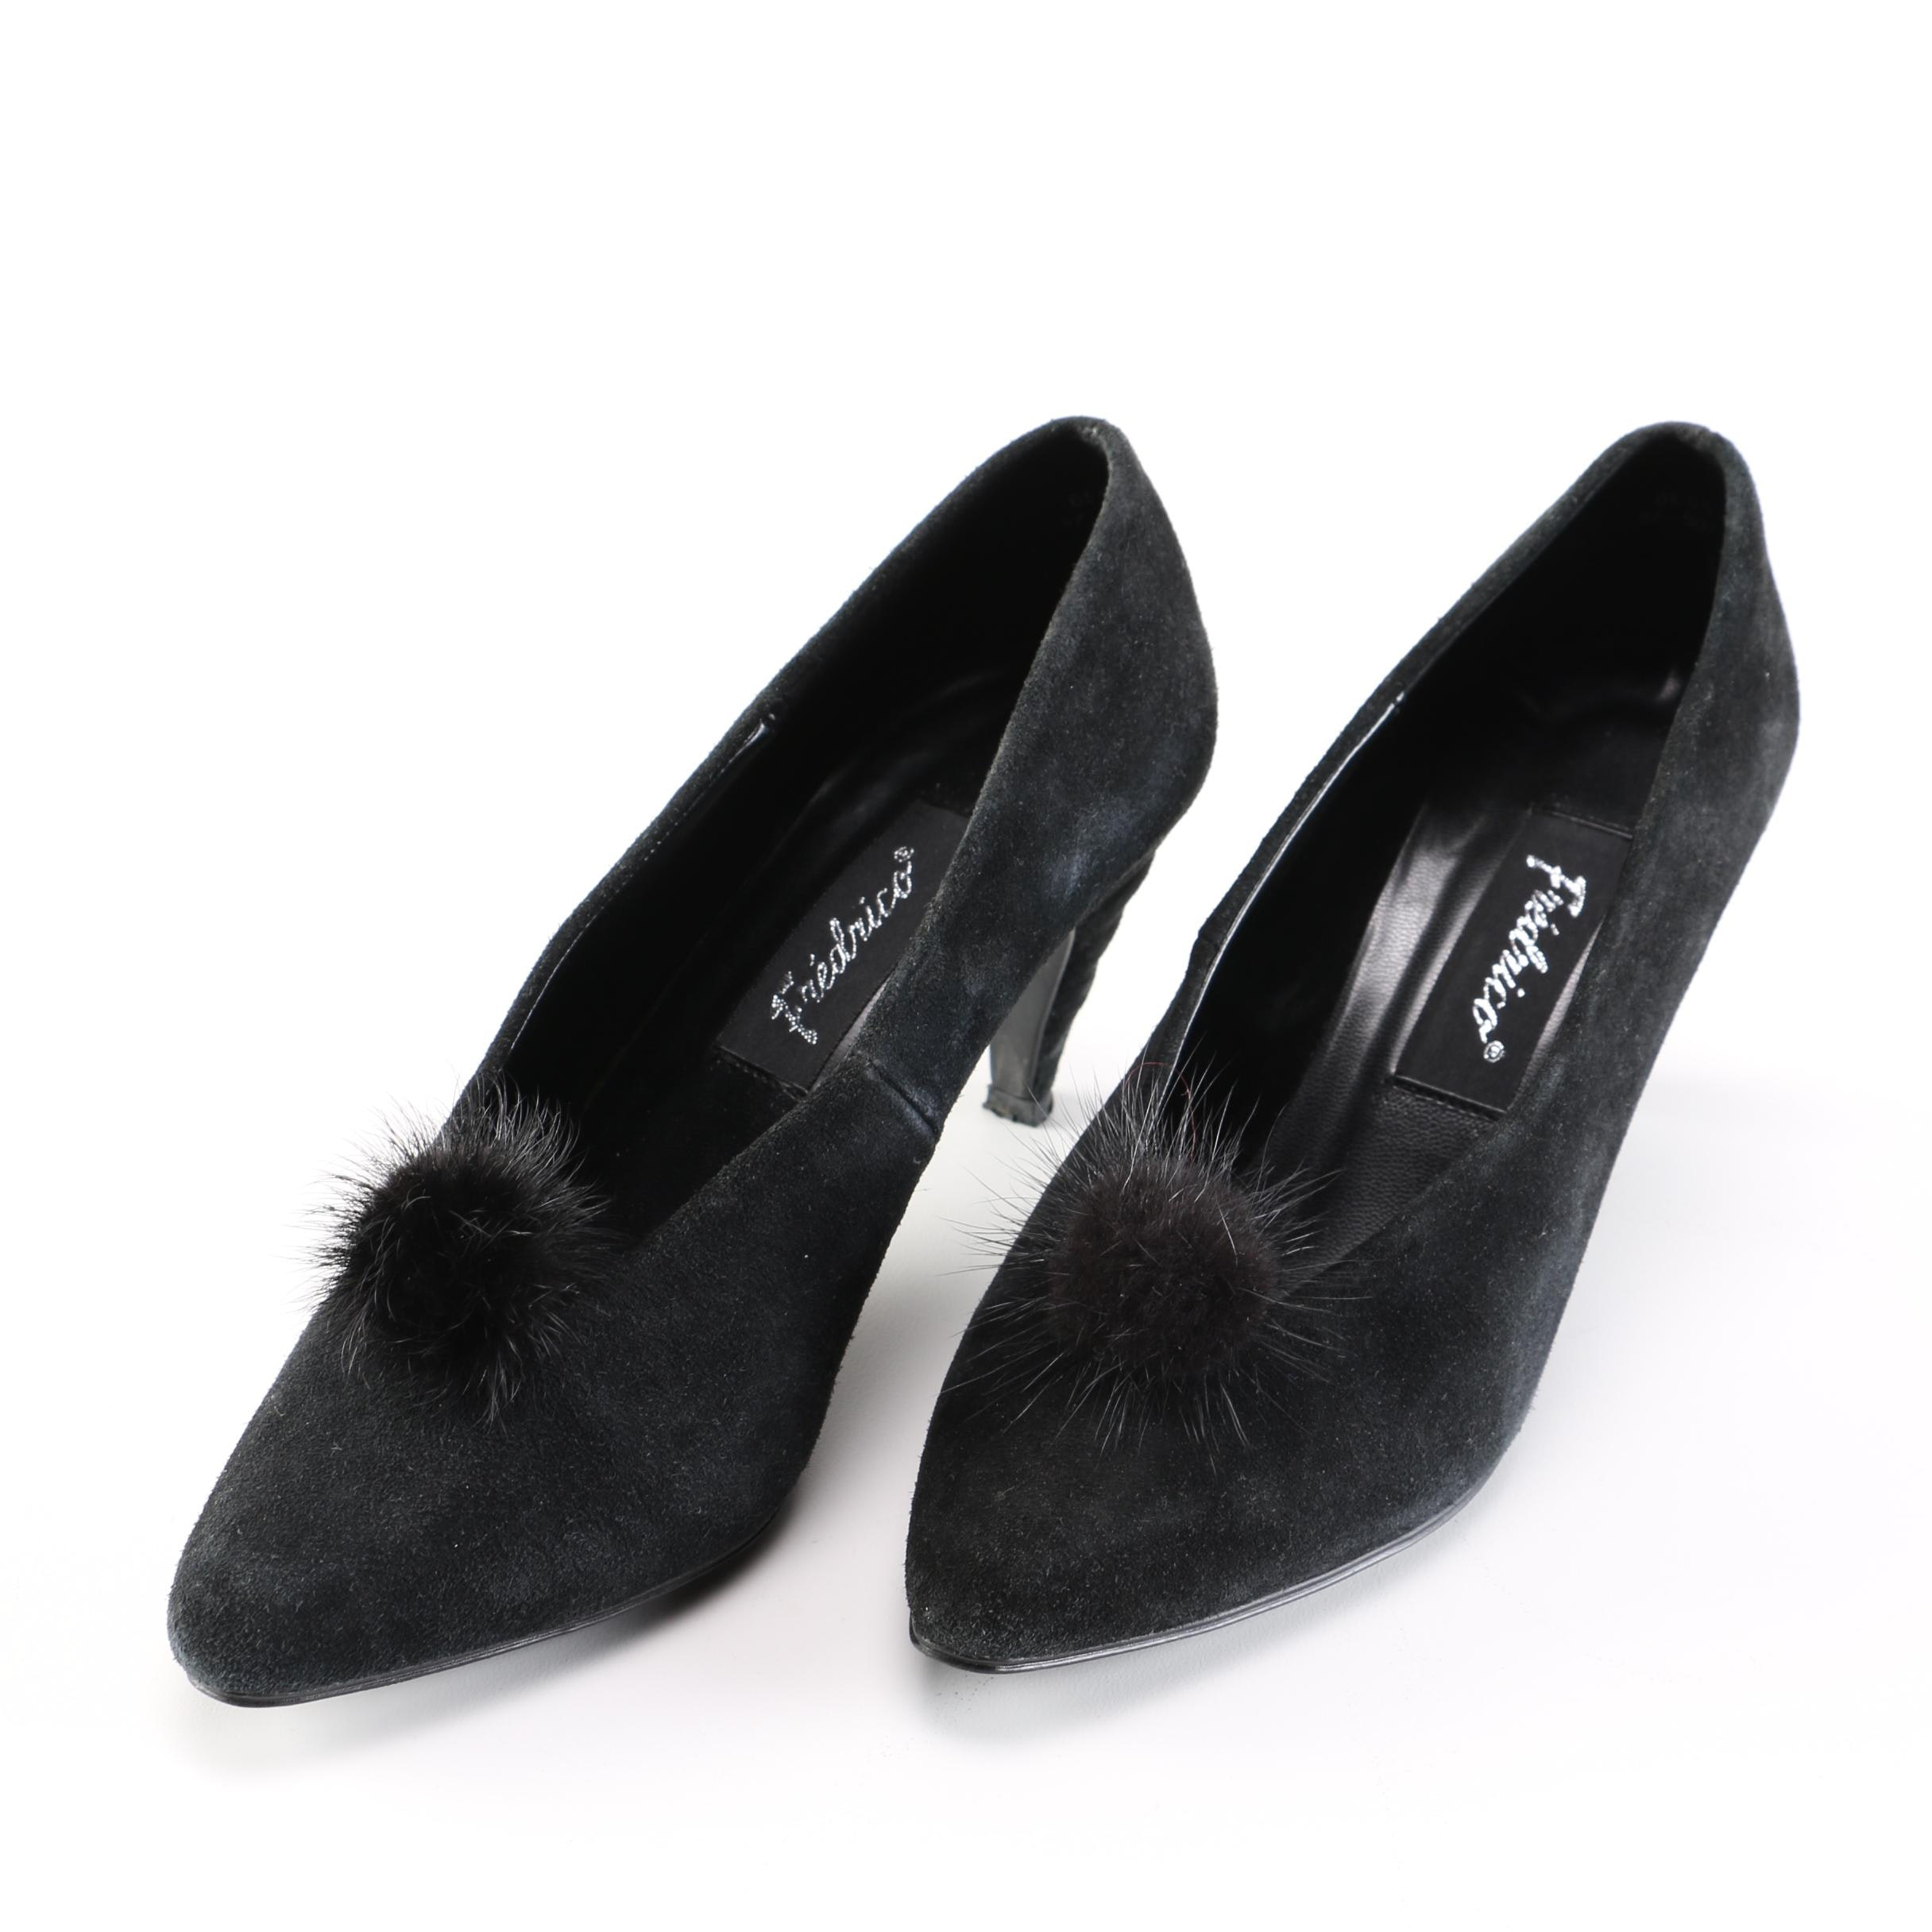 Fredrico Black Suede Pumps